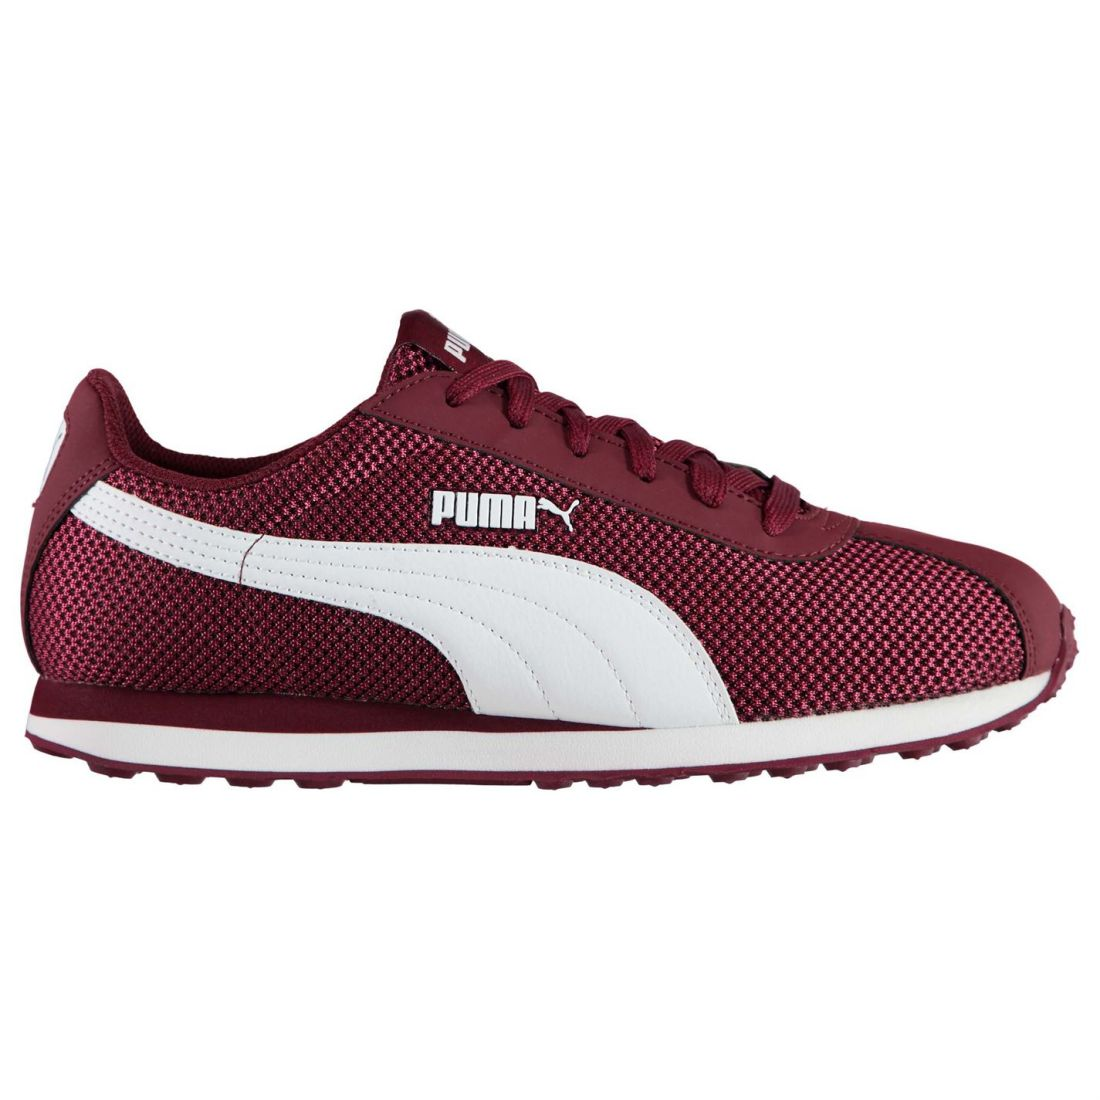 lowest price 6b139 3c5a8 Puma Mens Gents Turin Mesh Trainers Shoes Laces Fastened Footwear